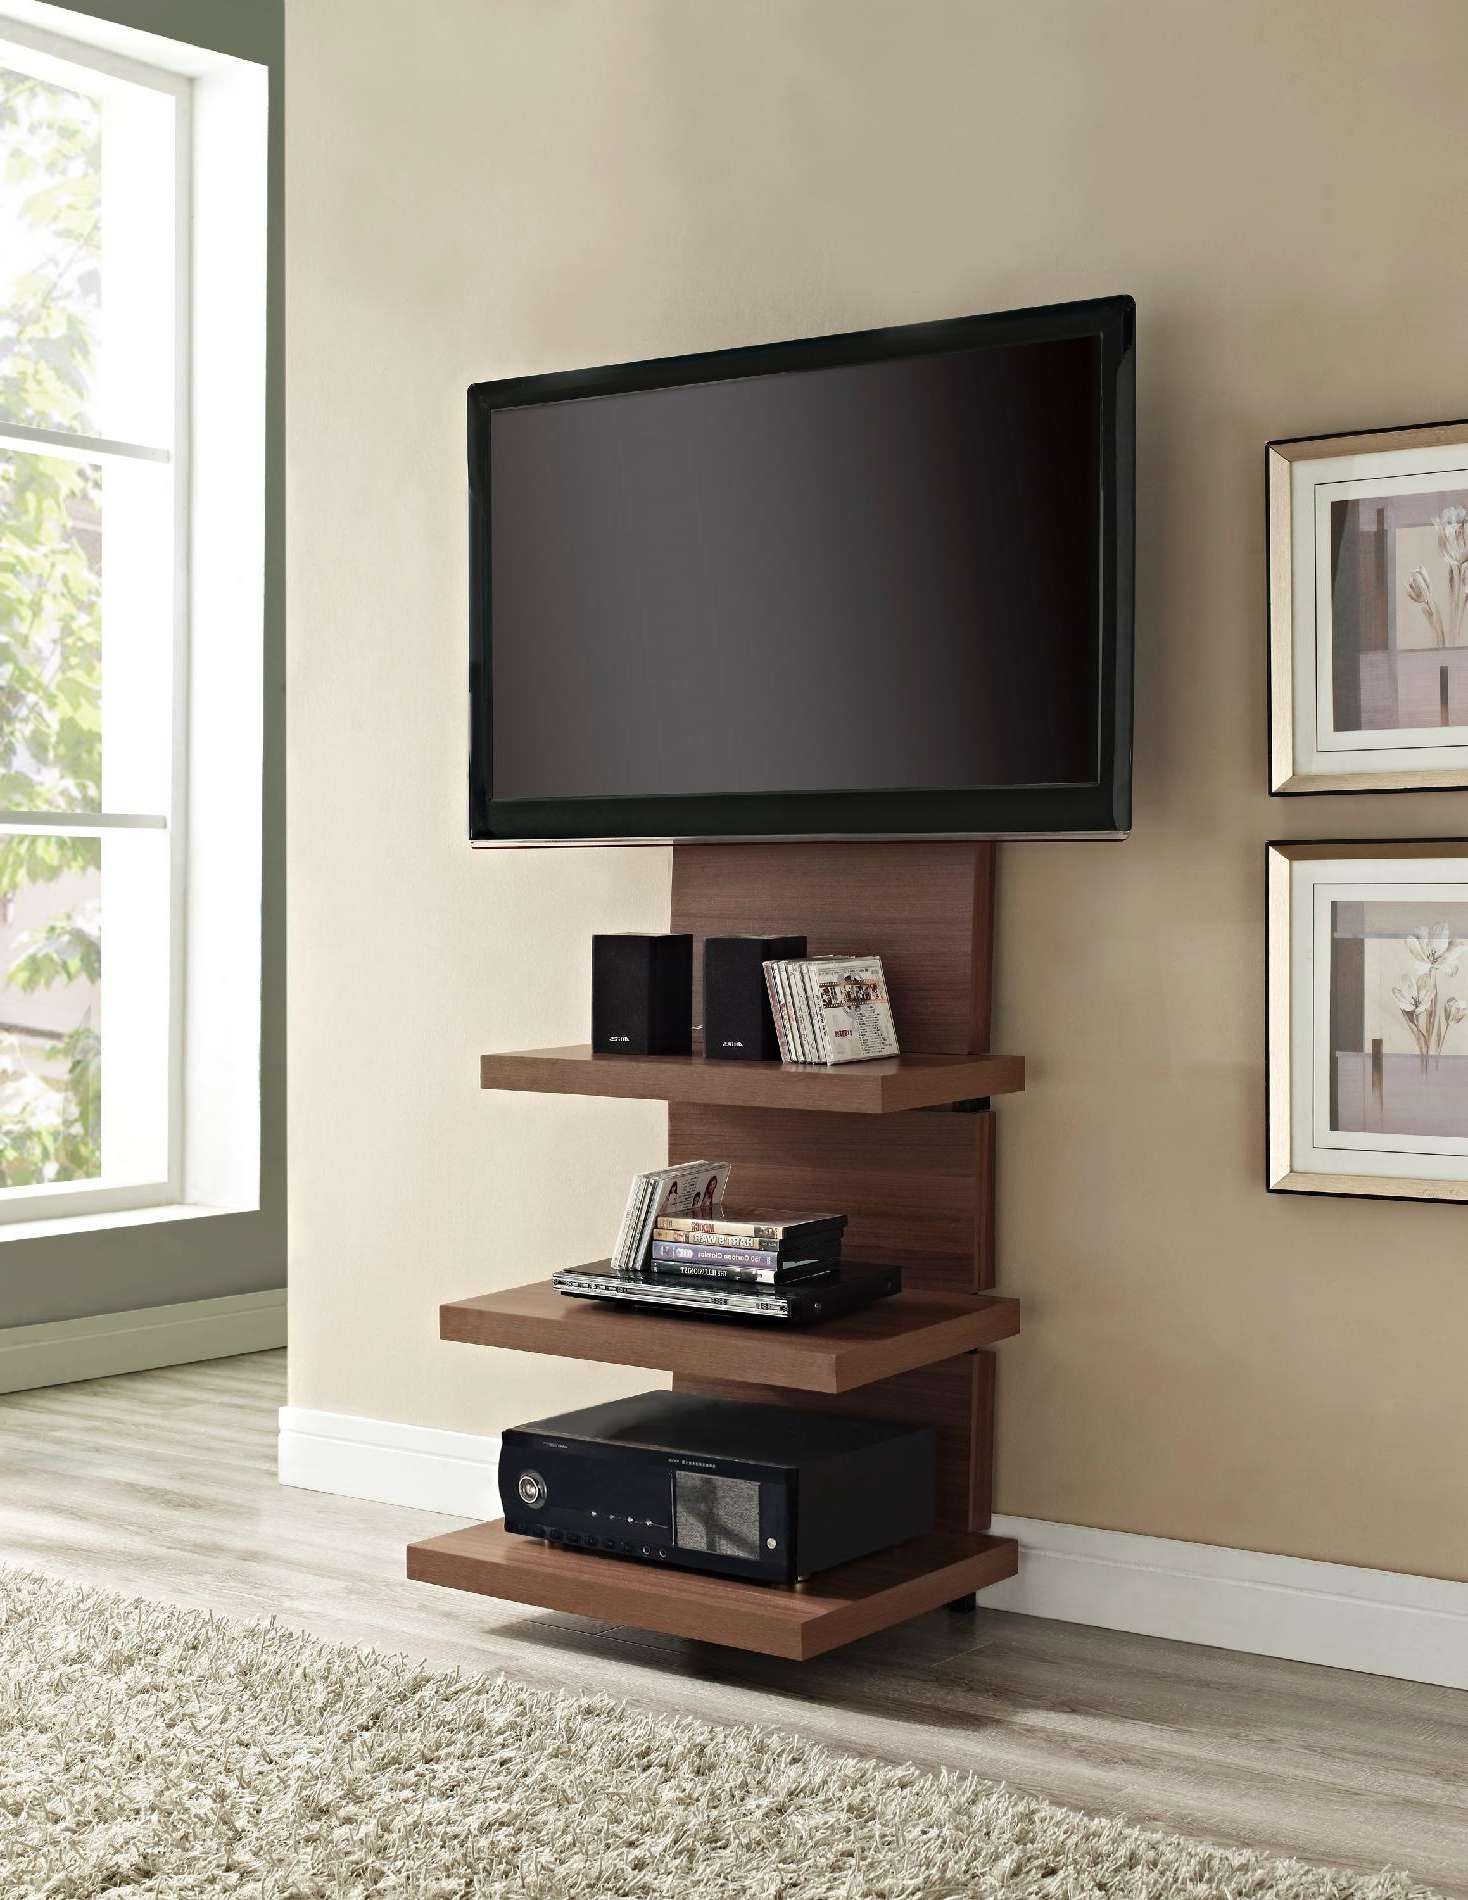 Tv Stand : Surprisingl Skinny Tv Stand Image Inspirations In Skinny Tv Stands (View 12 of 15)